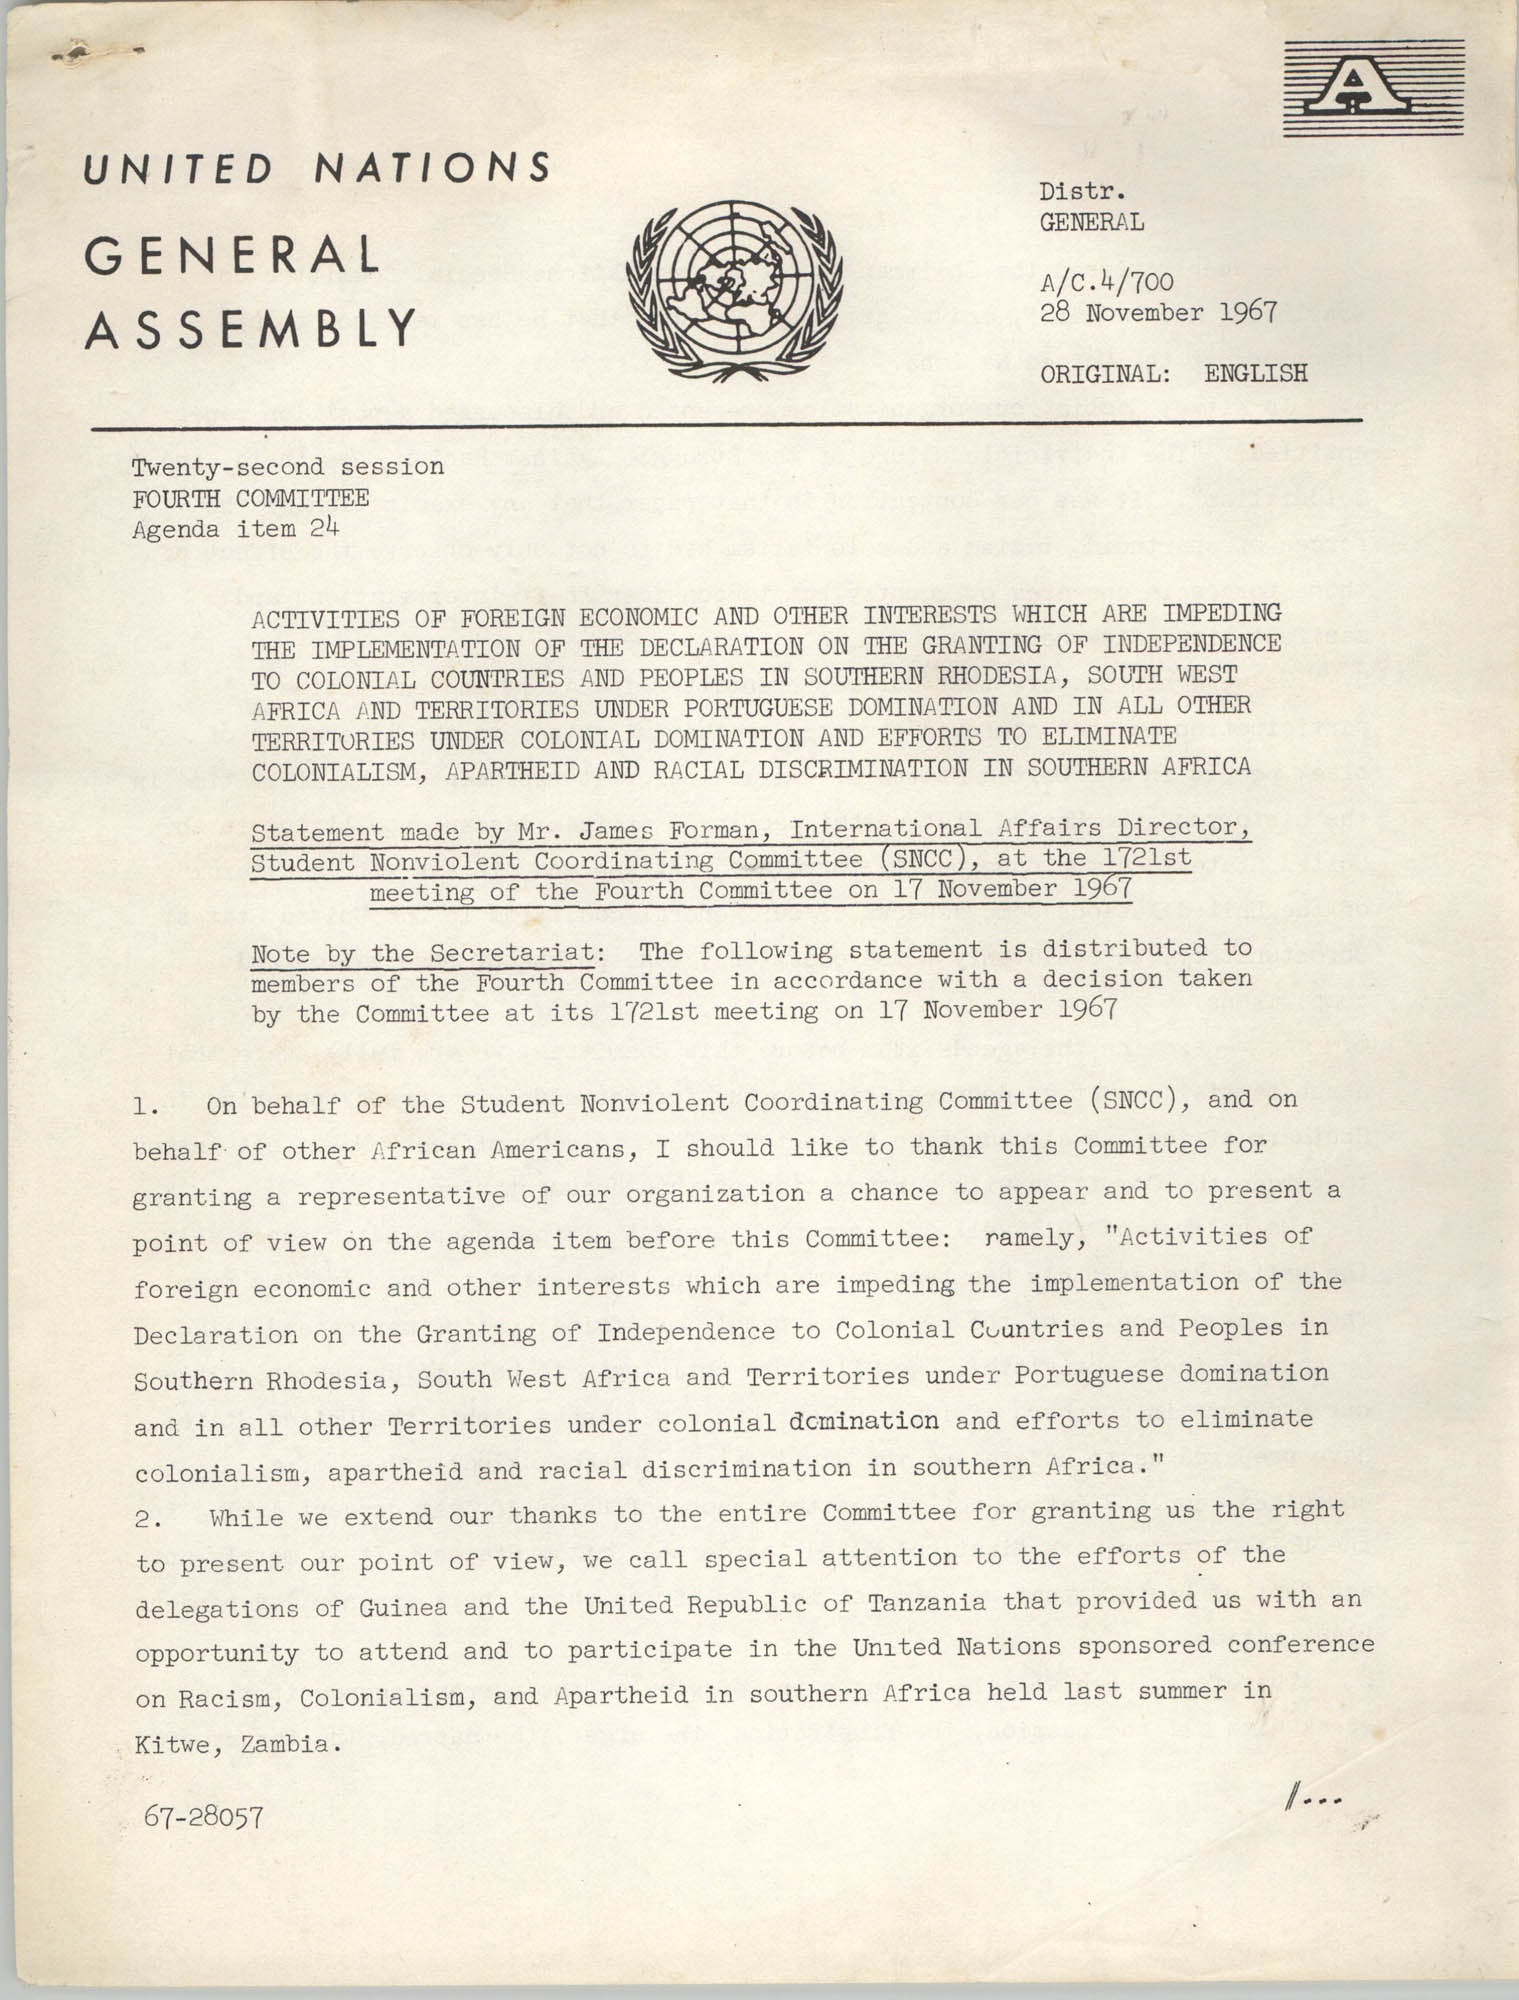 United Nations General Assembly Agenda Item 24: Student Nonviolent Coordinating Committee, Page 1